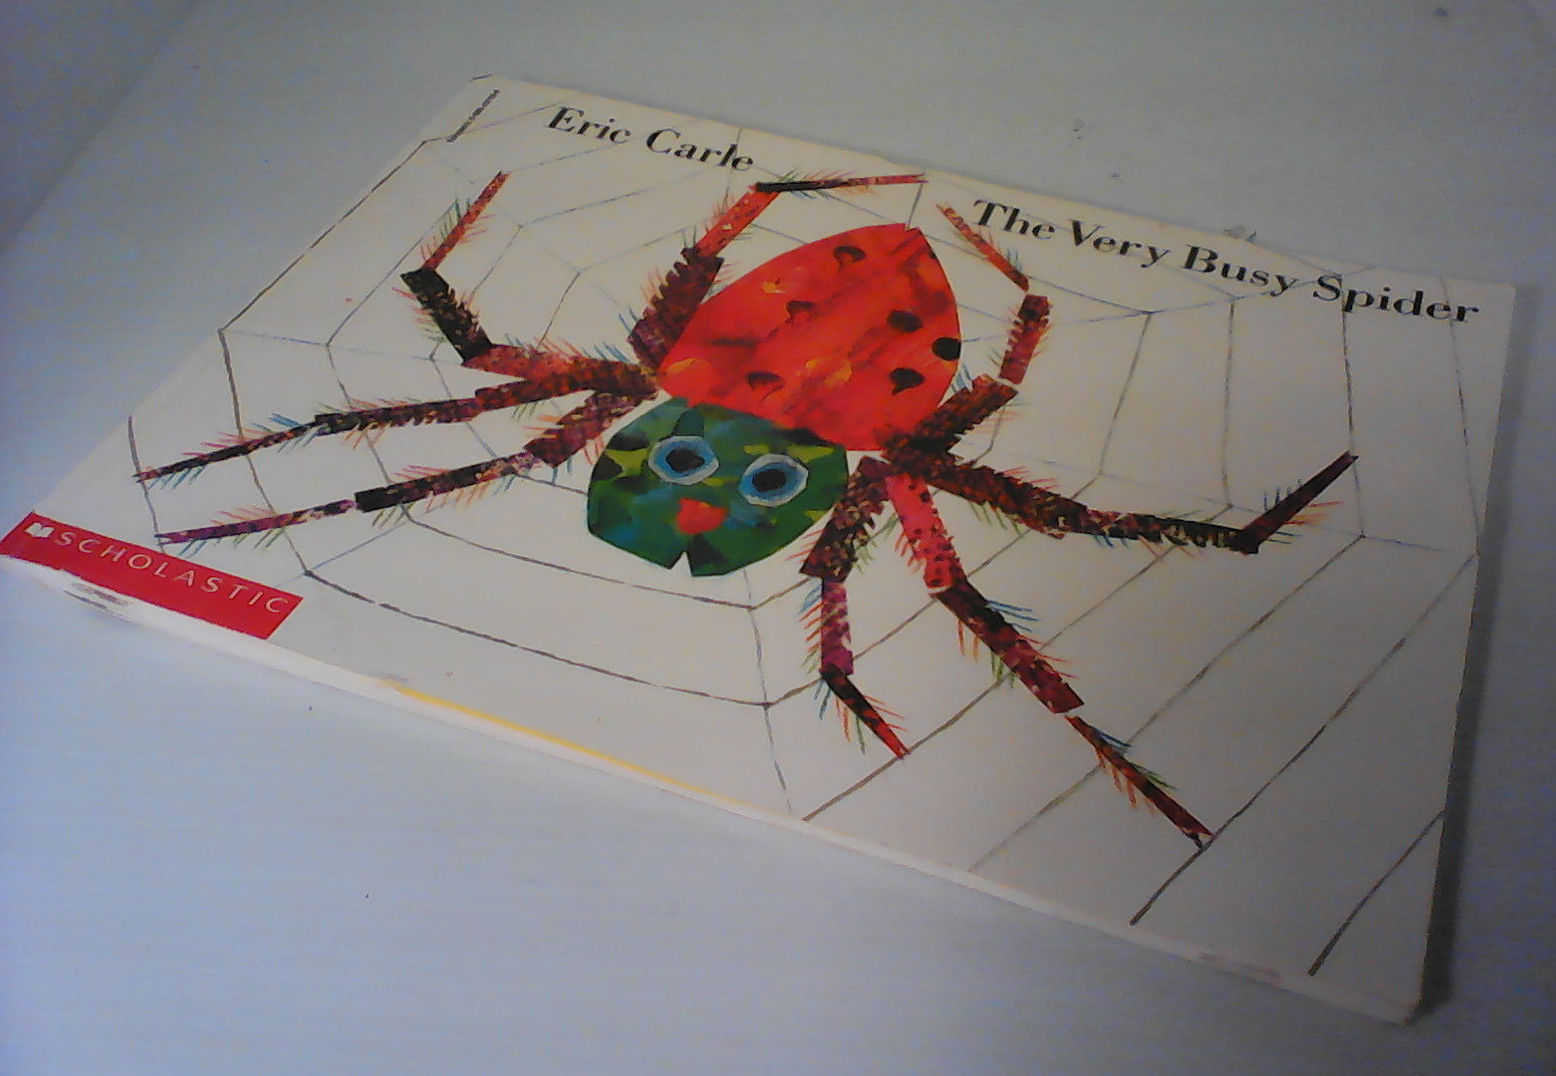 Very Busy Spider/ Eric Carle/ Scholastic paperback/ 1984/ animal book